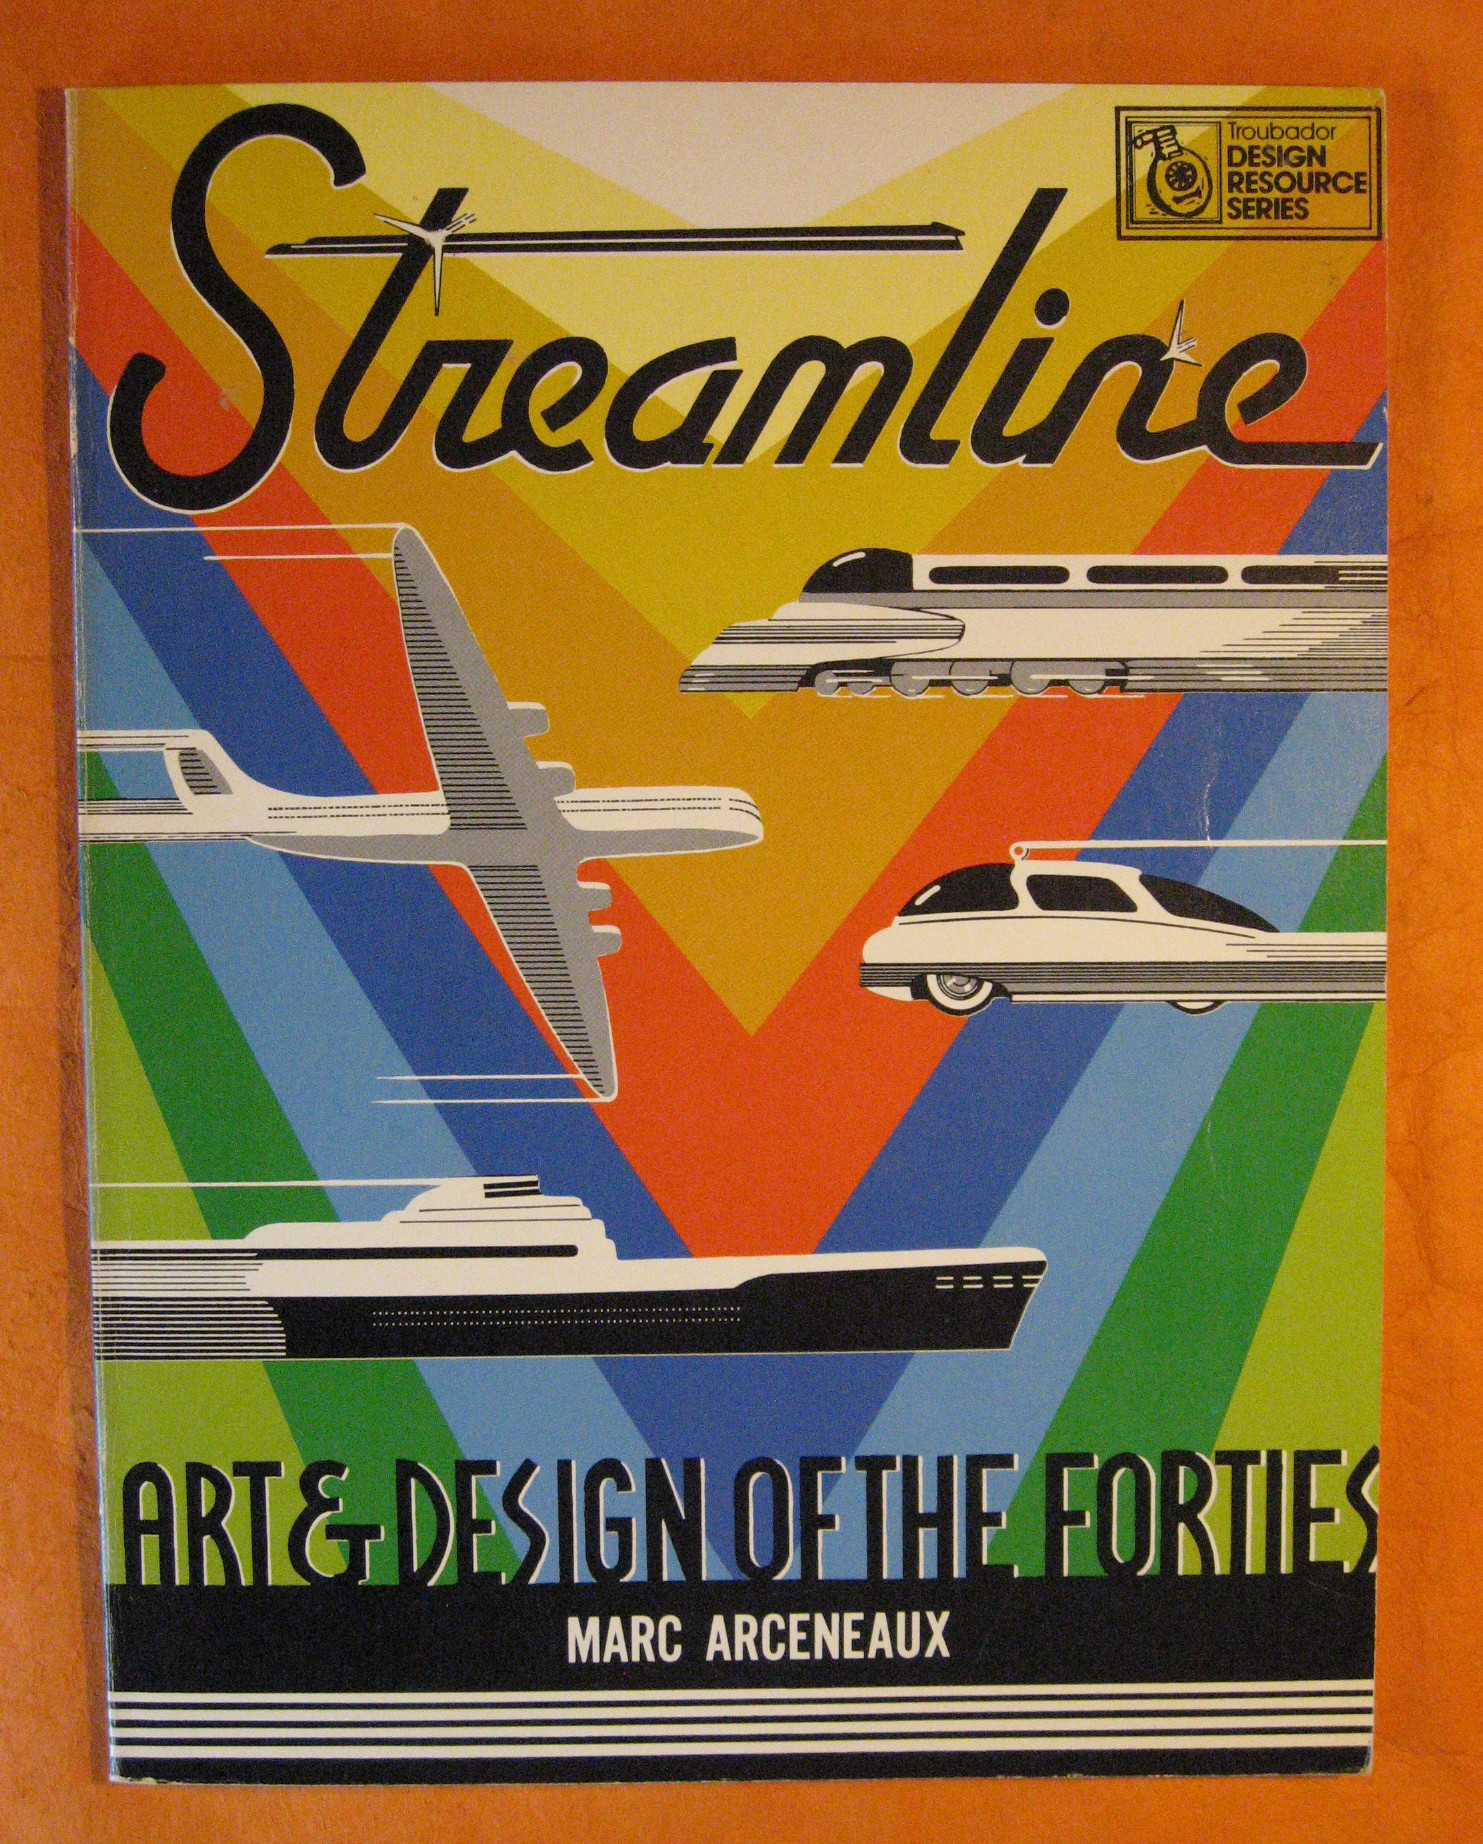 Streamline: Art and Design of the Forties (Design Resource Series), Arceneaux, Marc